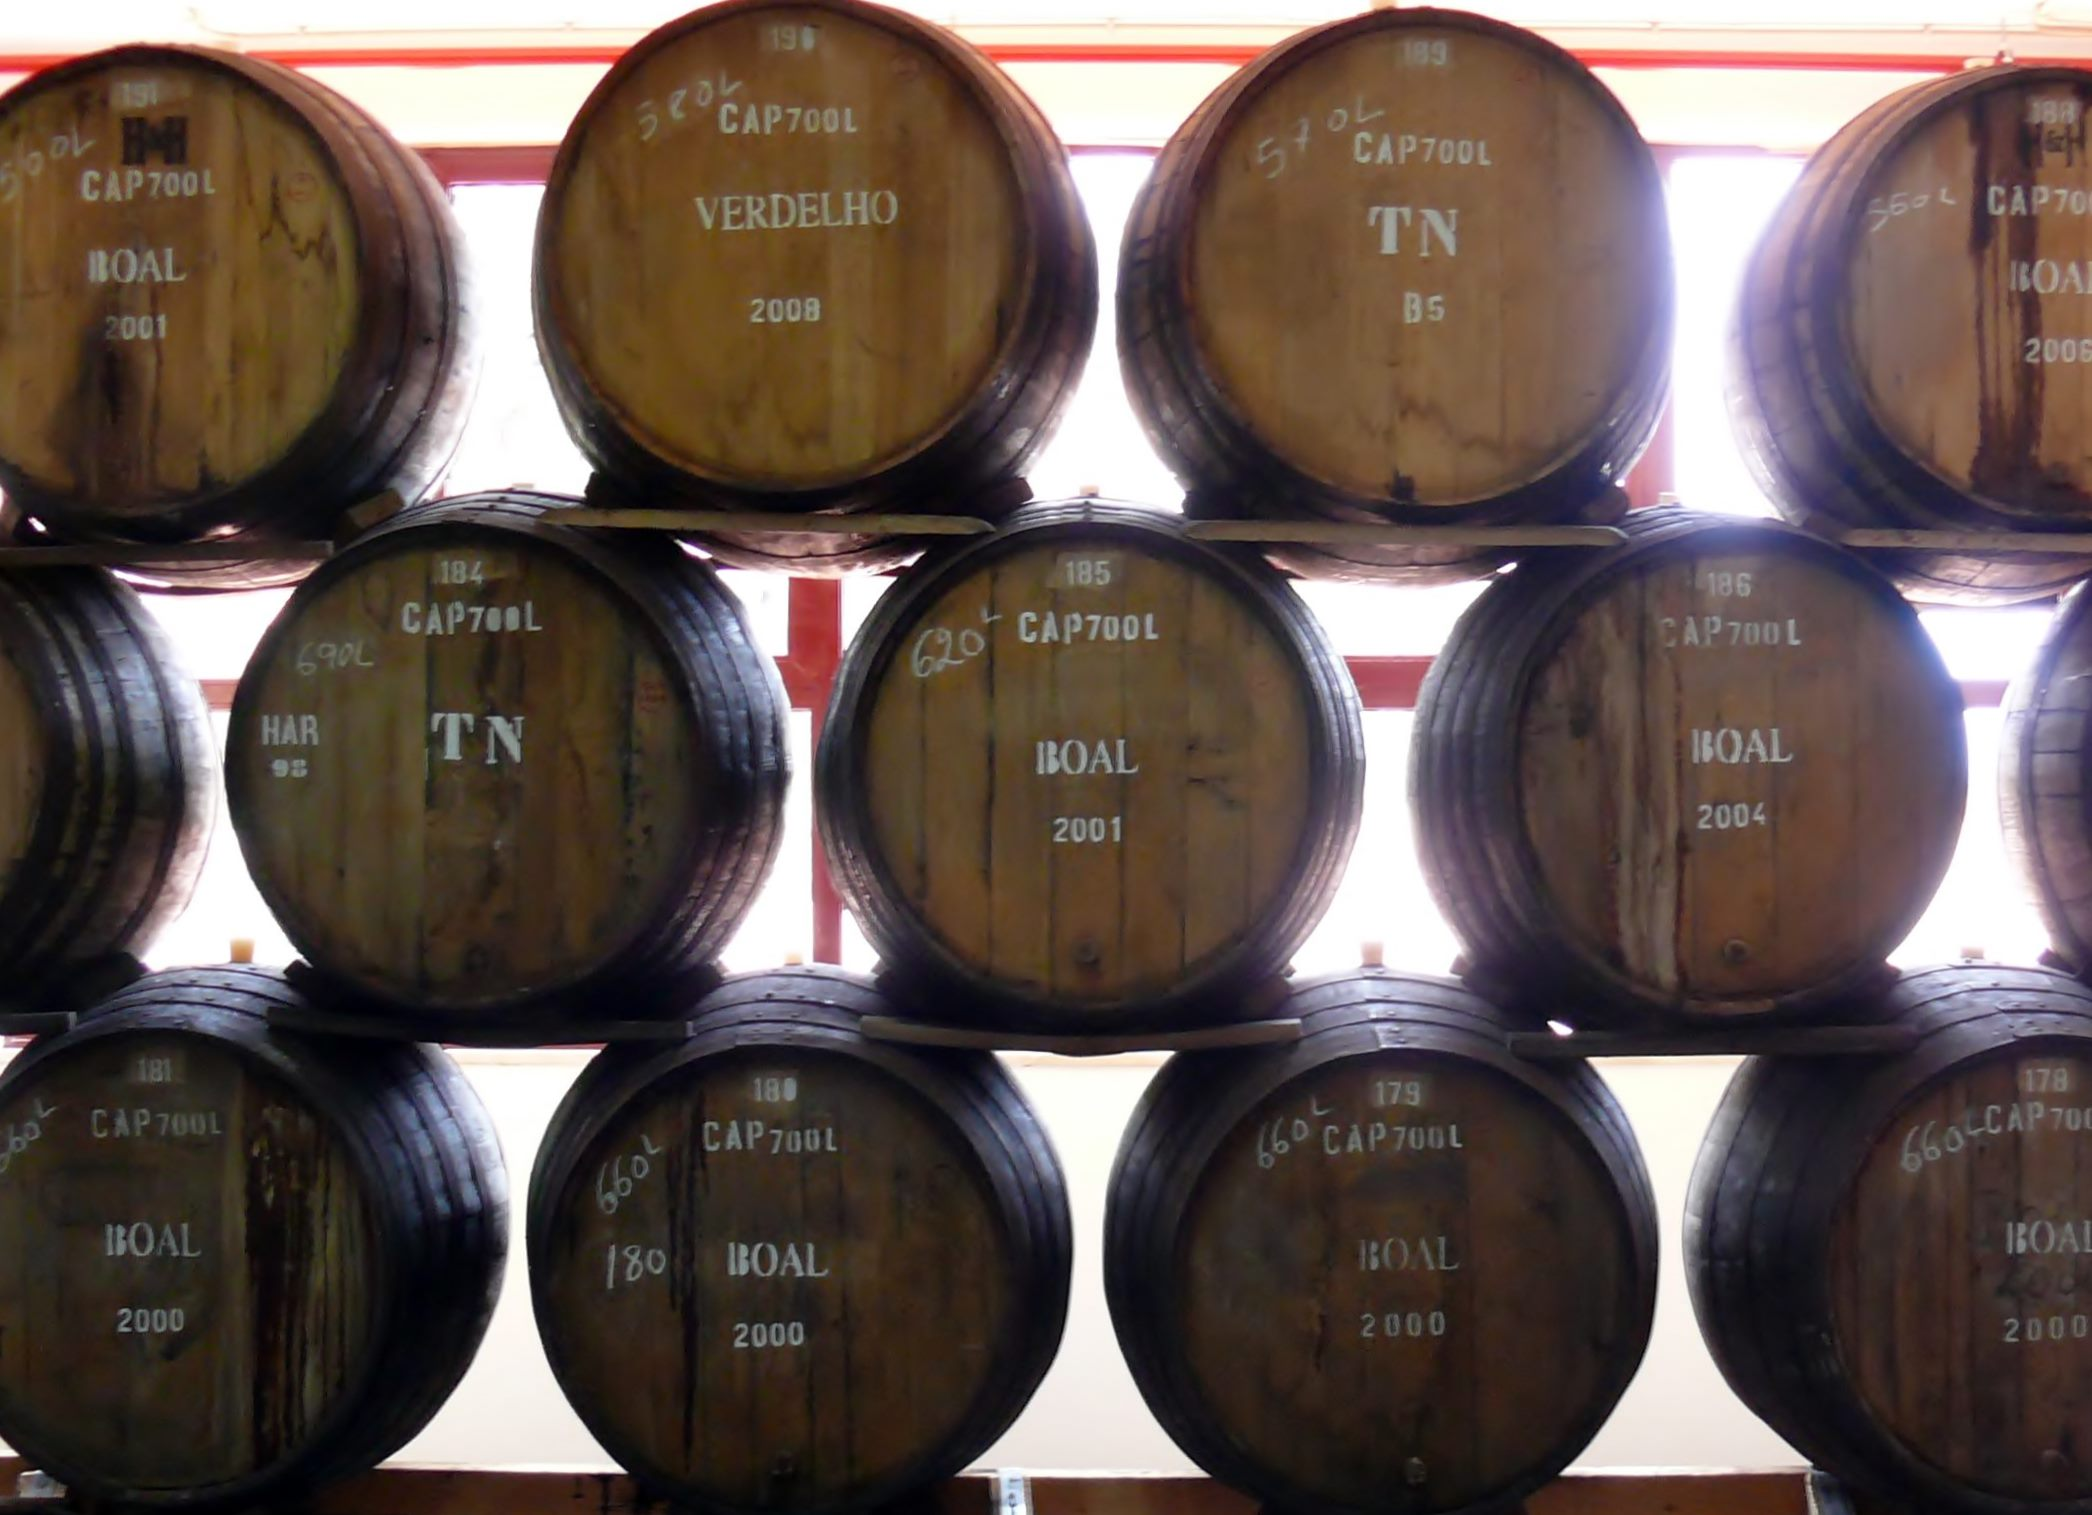 Boal, Verdelho and Tinta Negra all aging canteiro style